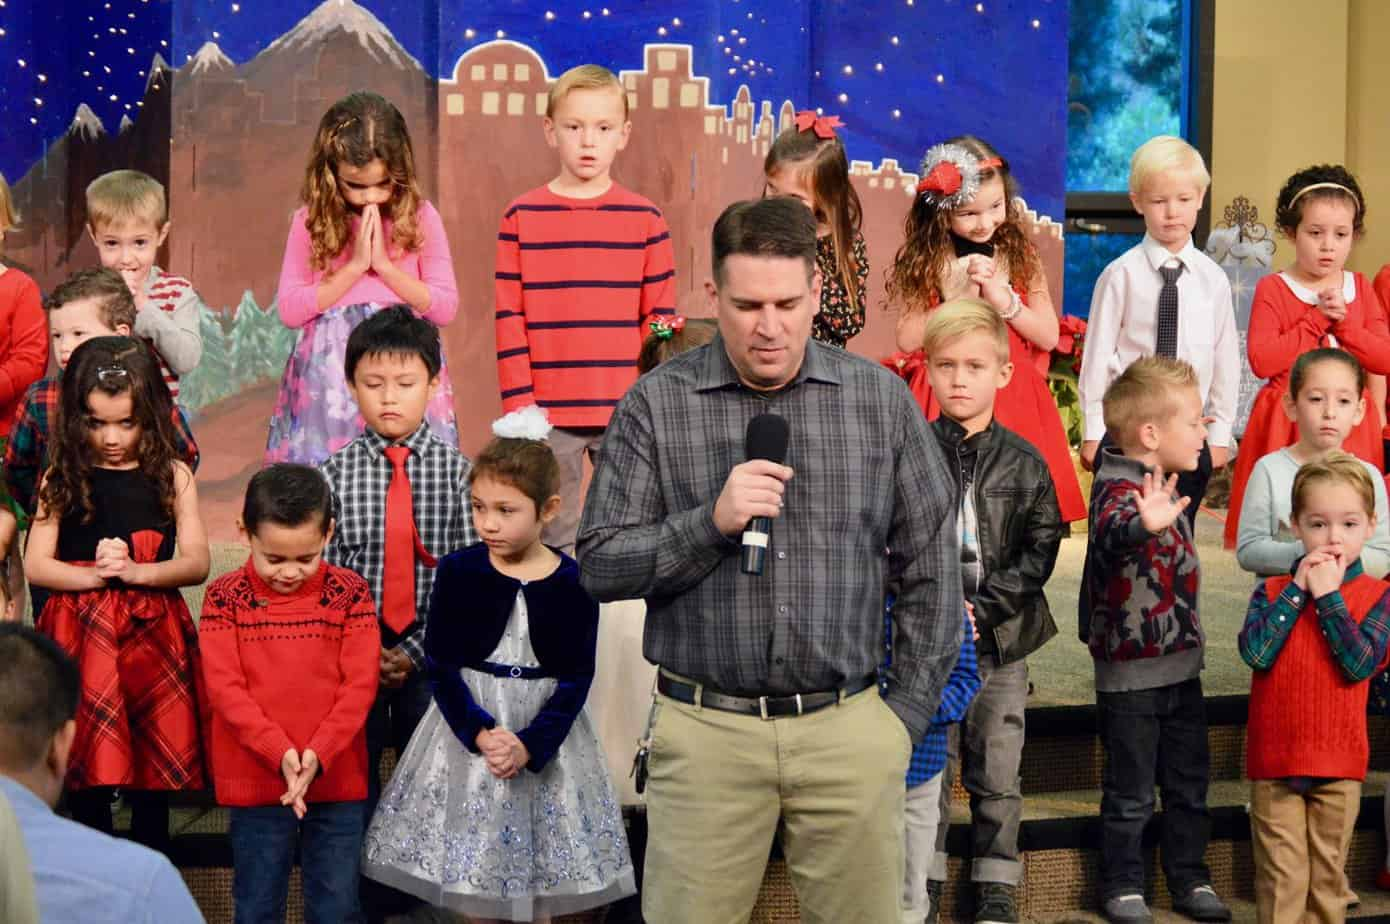 Youth Minister Aaron Stevens pray at The Christmas Children Show - Mission Viejo Church of Christ